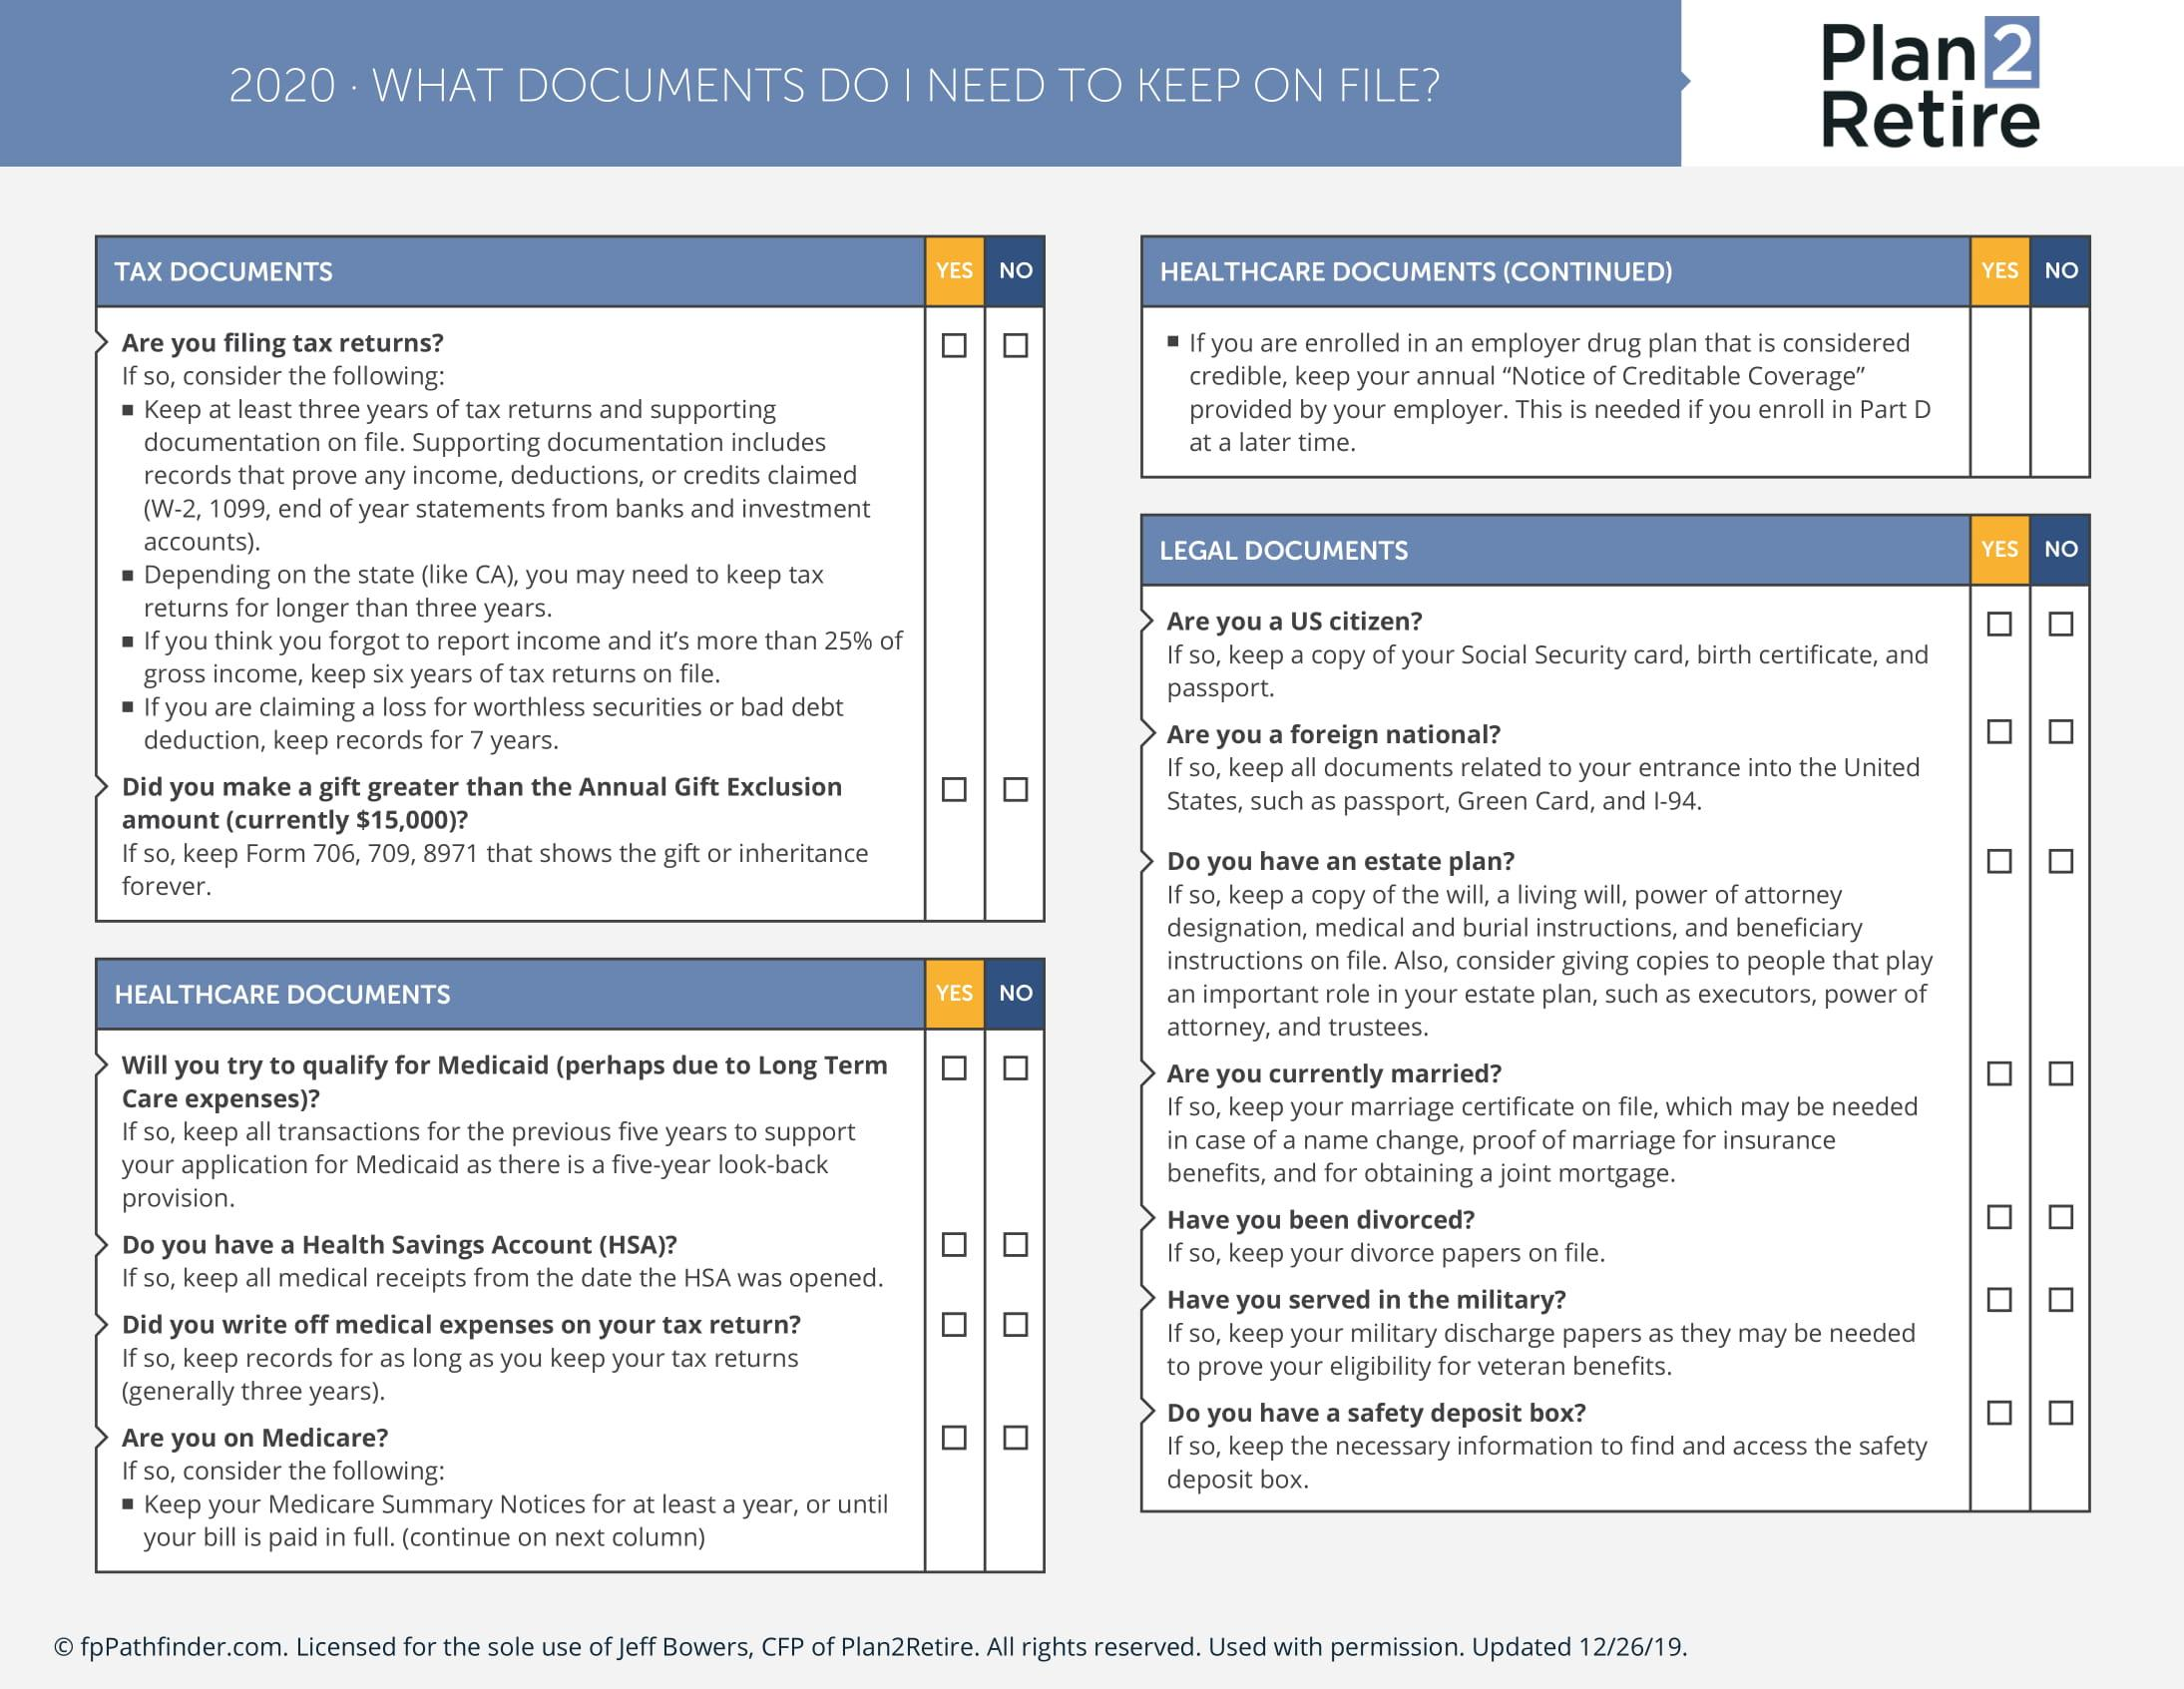 What documents do I need to keep on file? Thumbnail